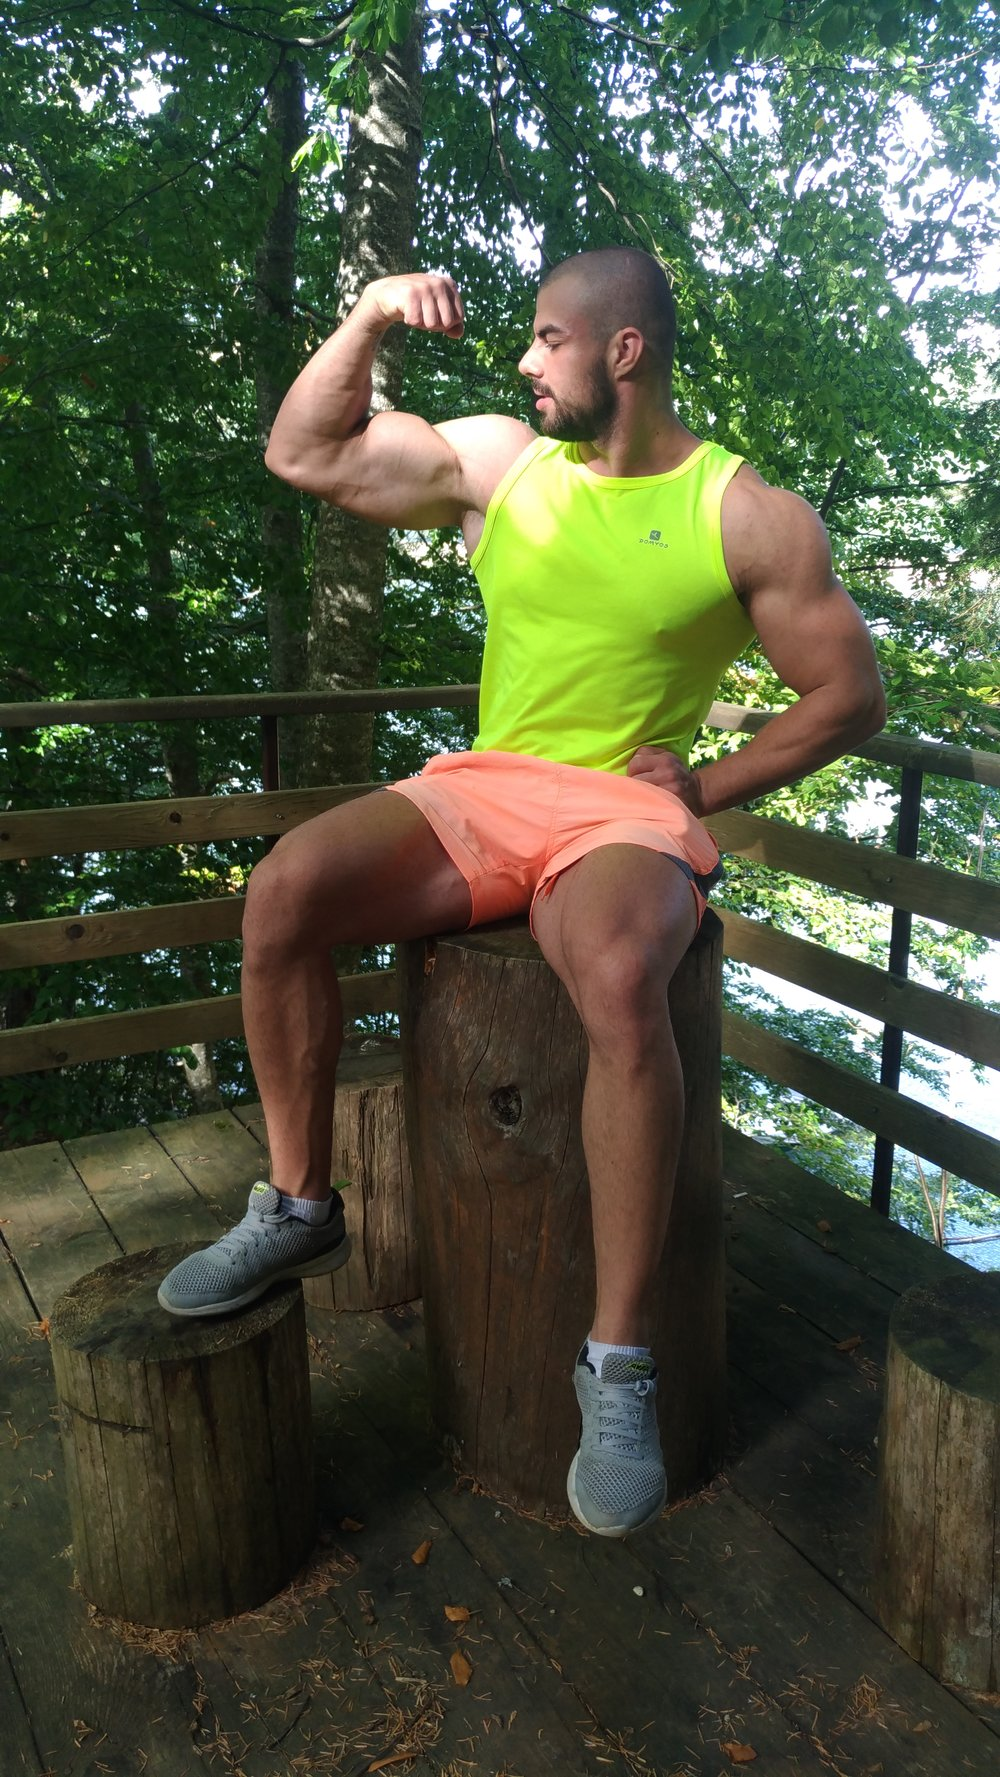 - Muscles in nature